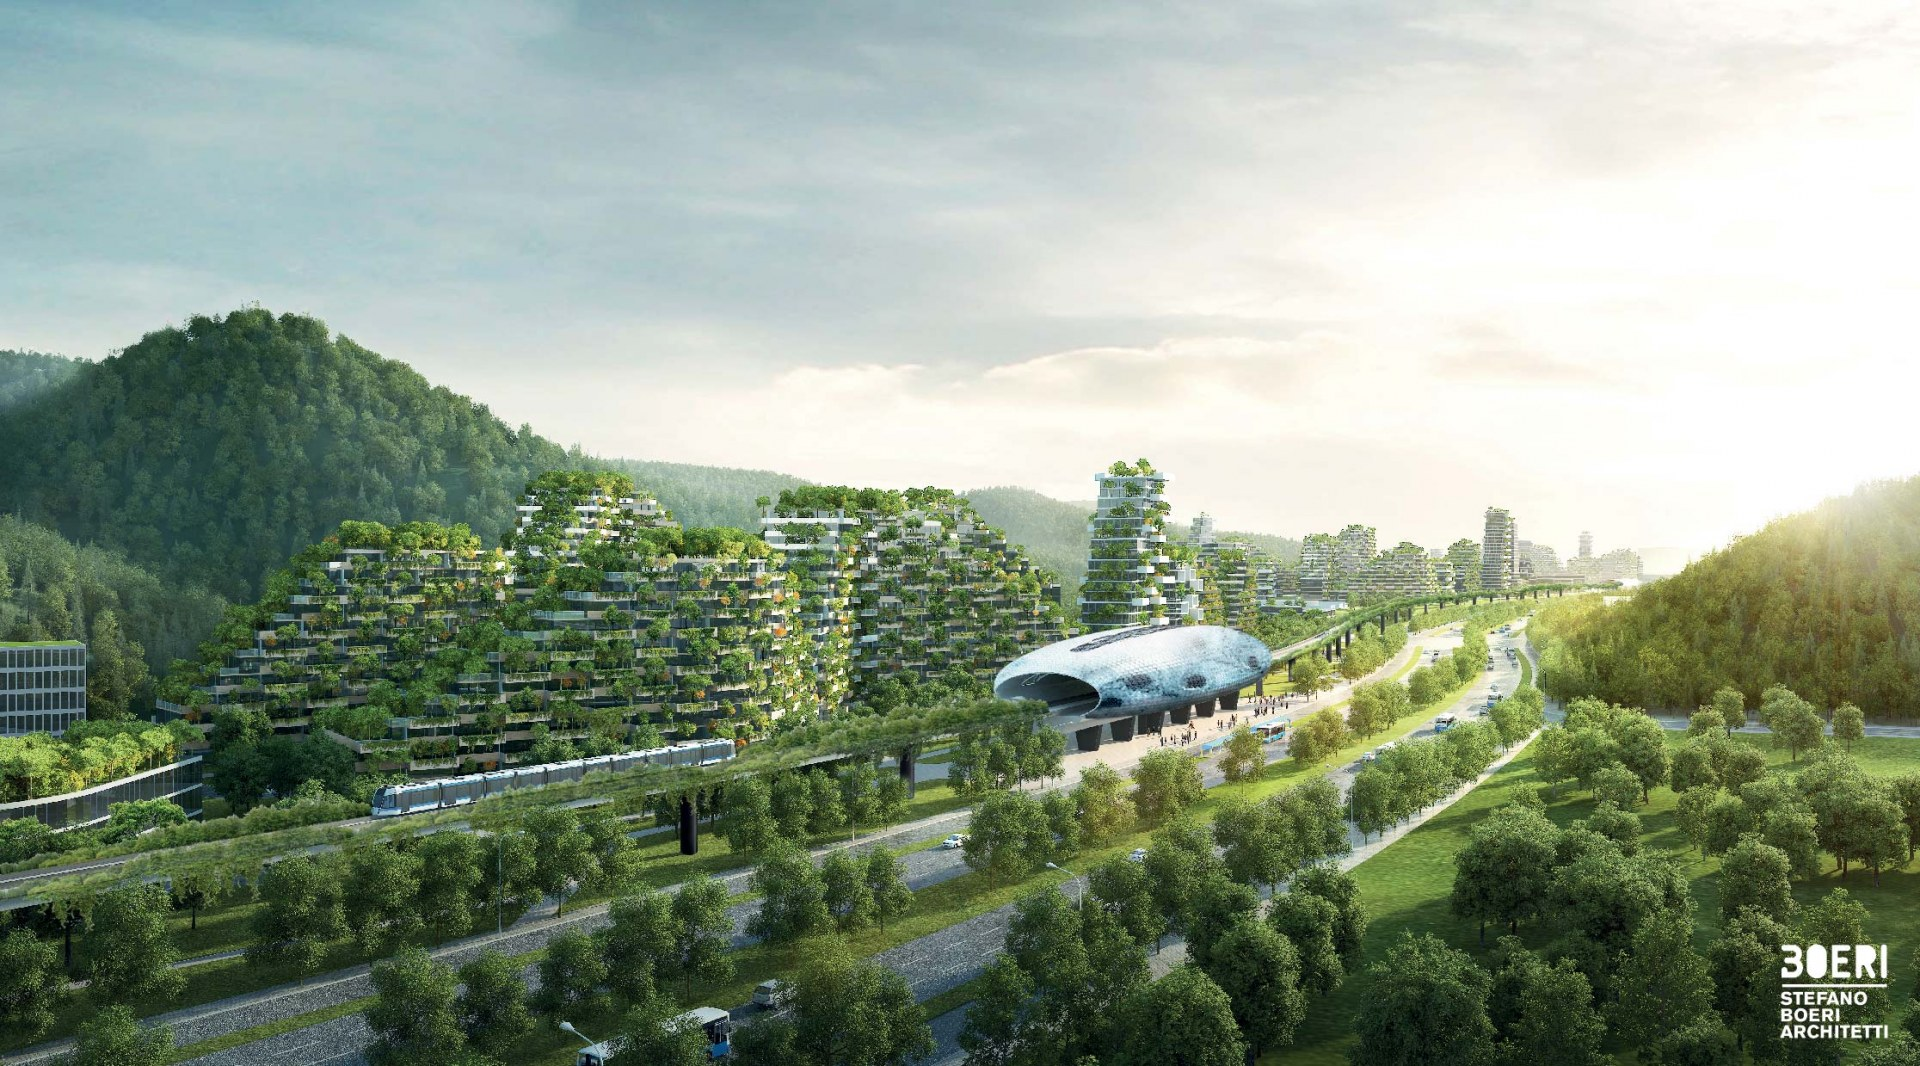 Recriação de Liuzhou Forest City